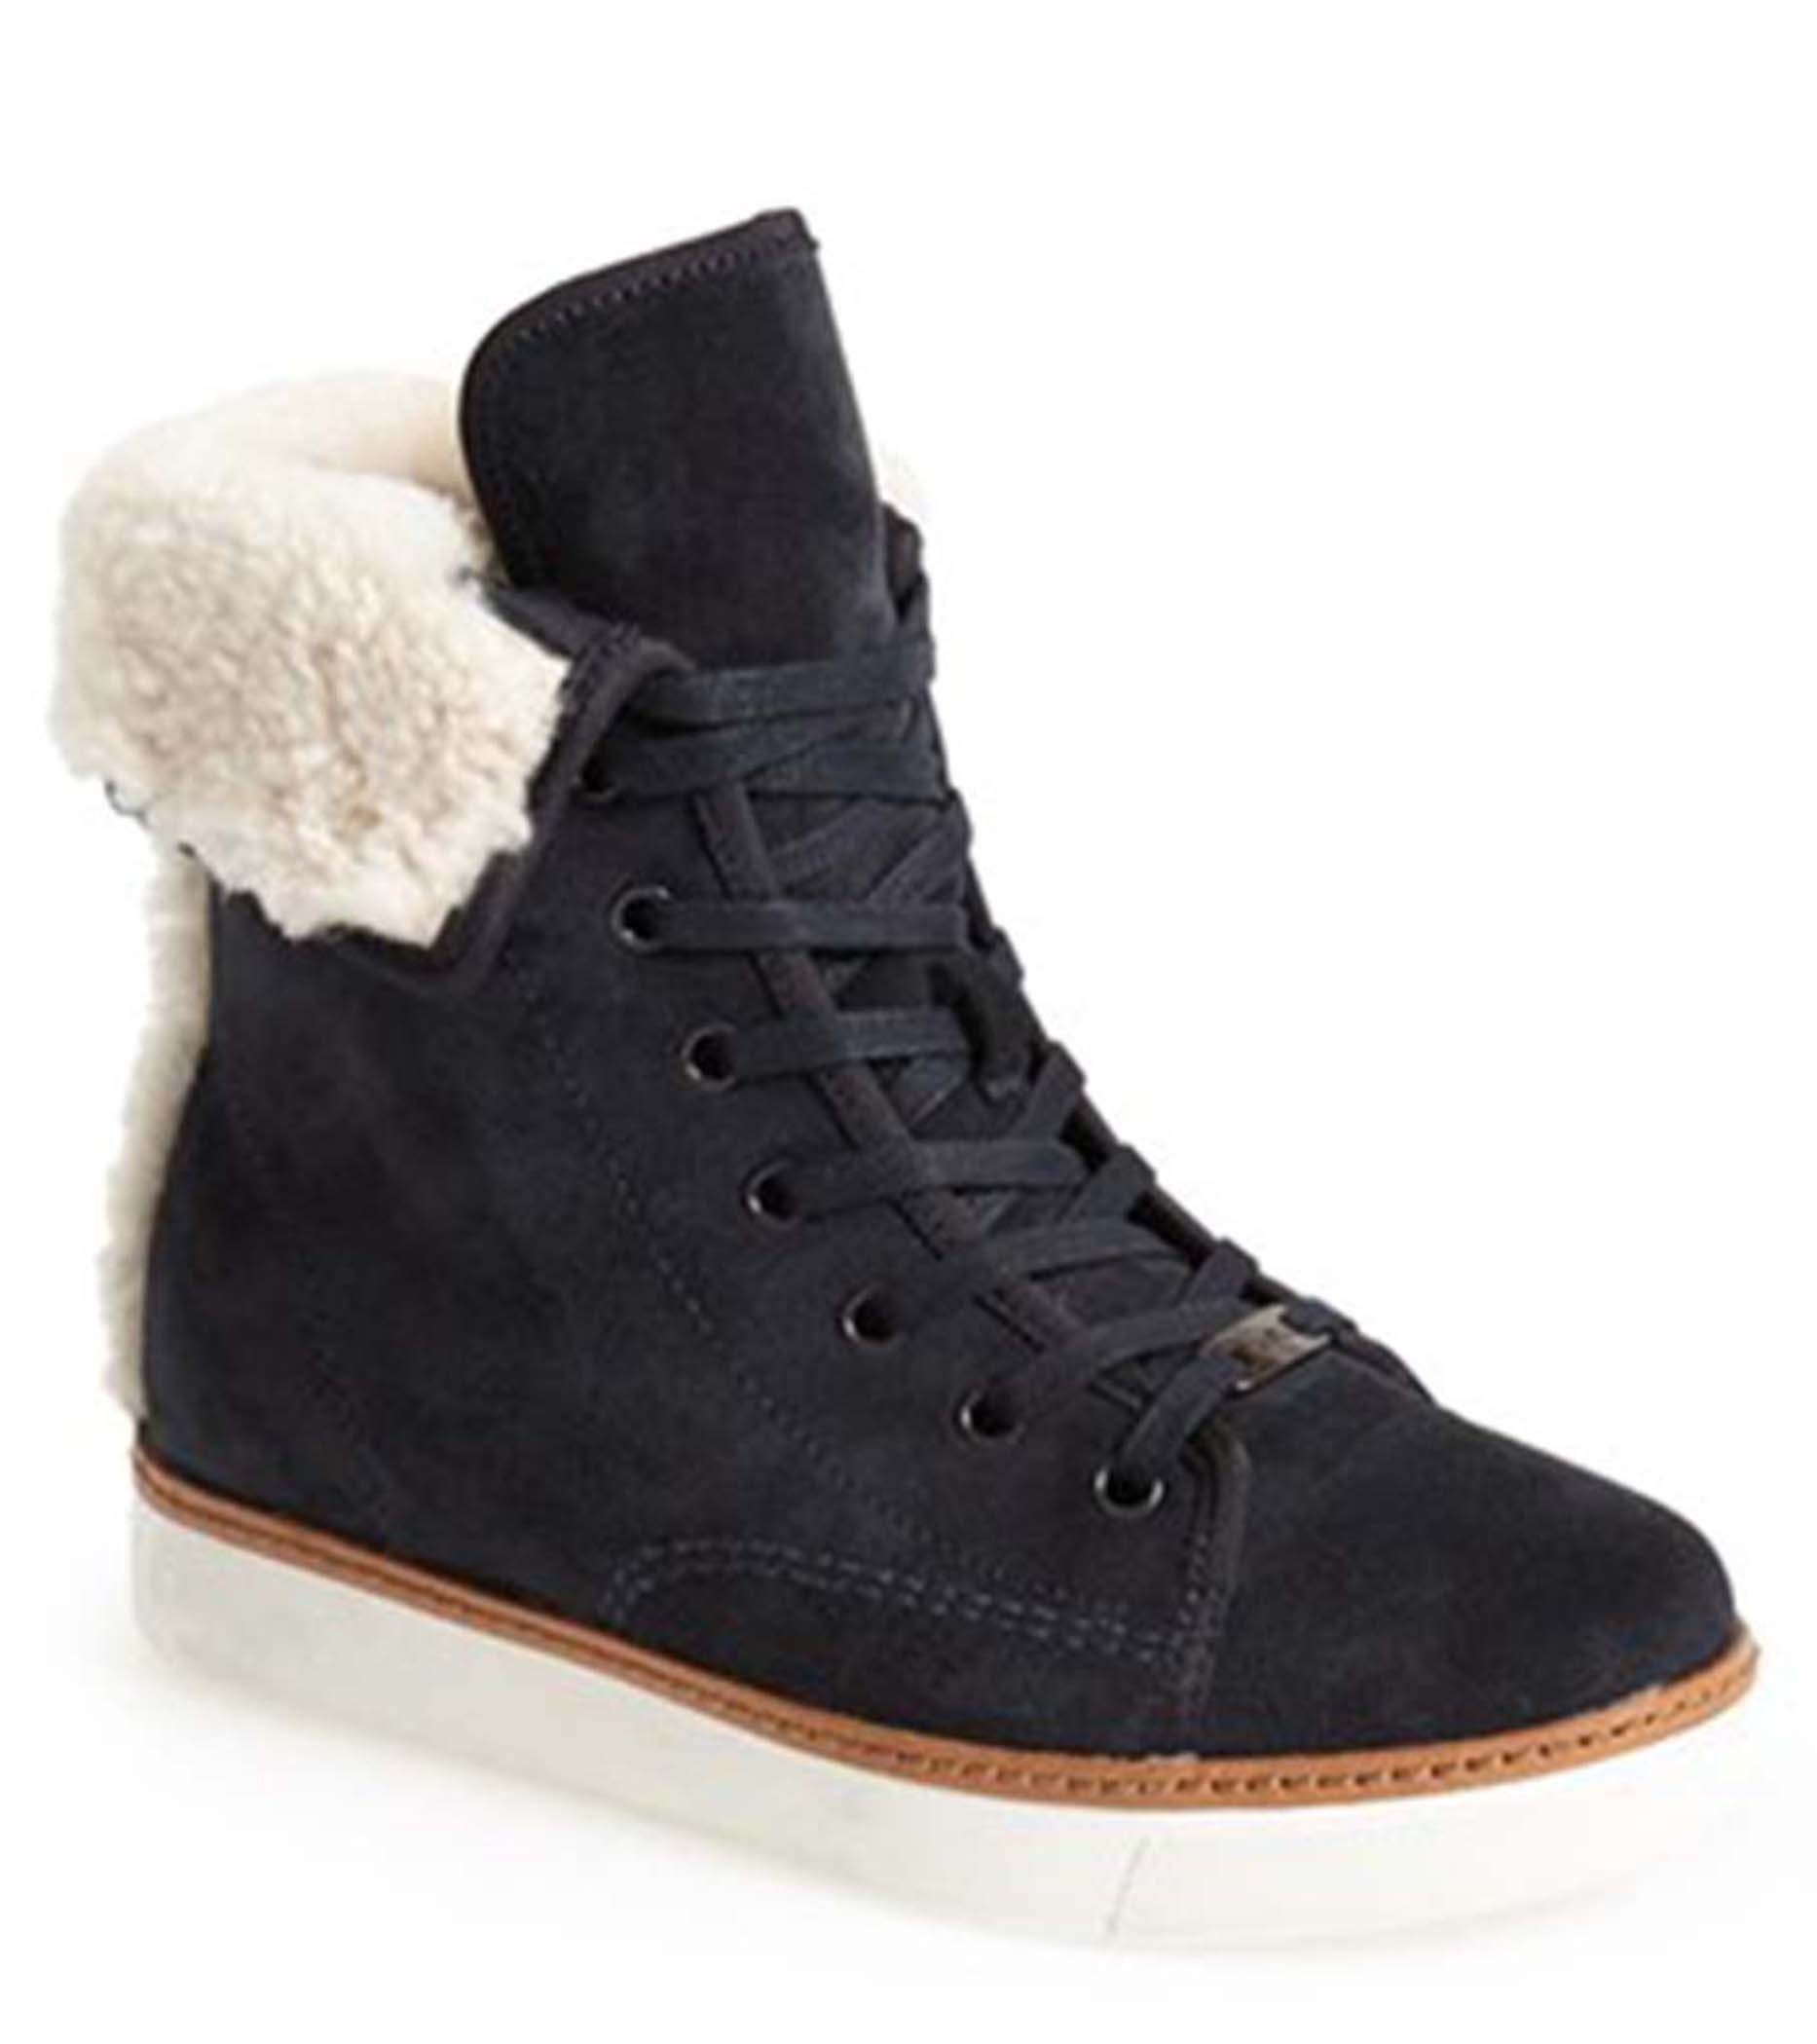 Coach Woman's Ramsey Shearling Boot Sneaker Navy Size 5.5 M by led